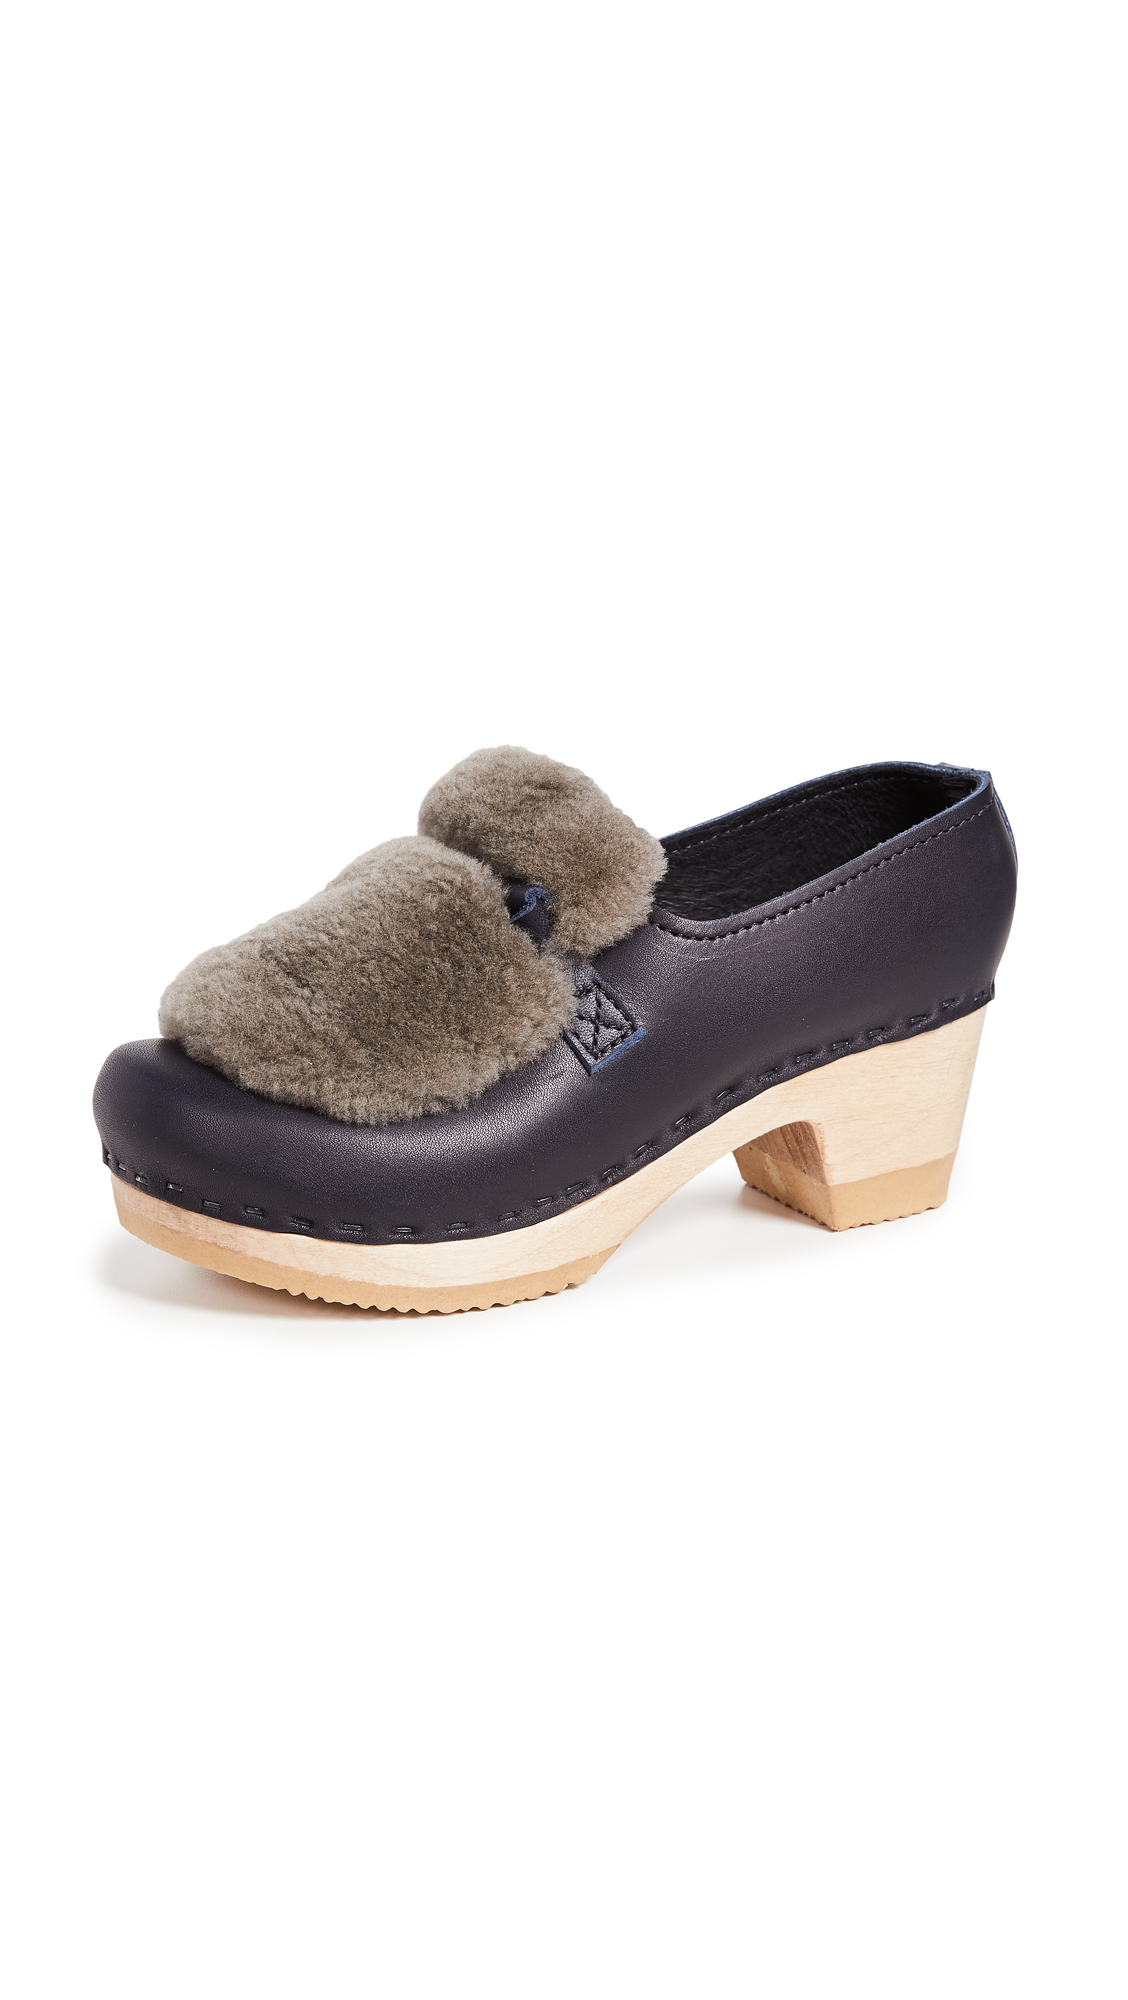 No.6 Shearling Loafers - Indigo/Storm